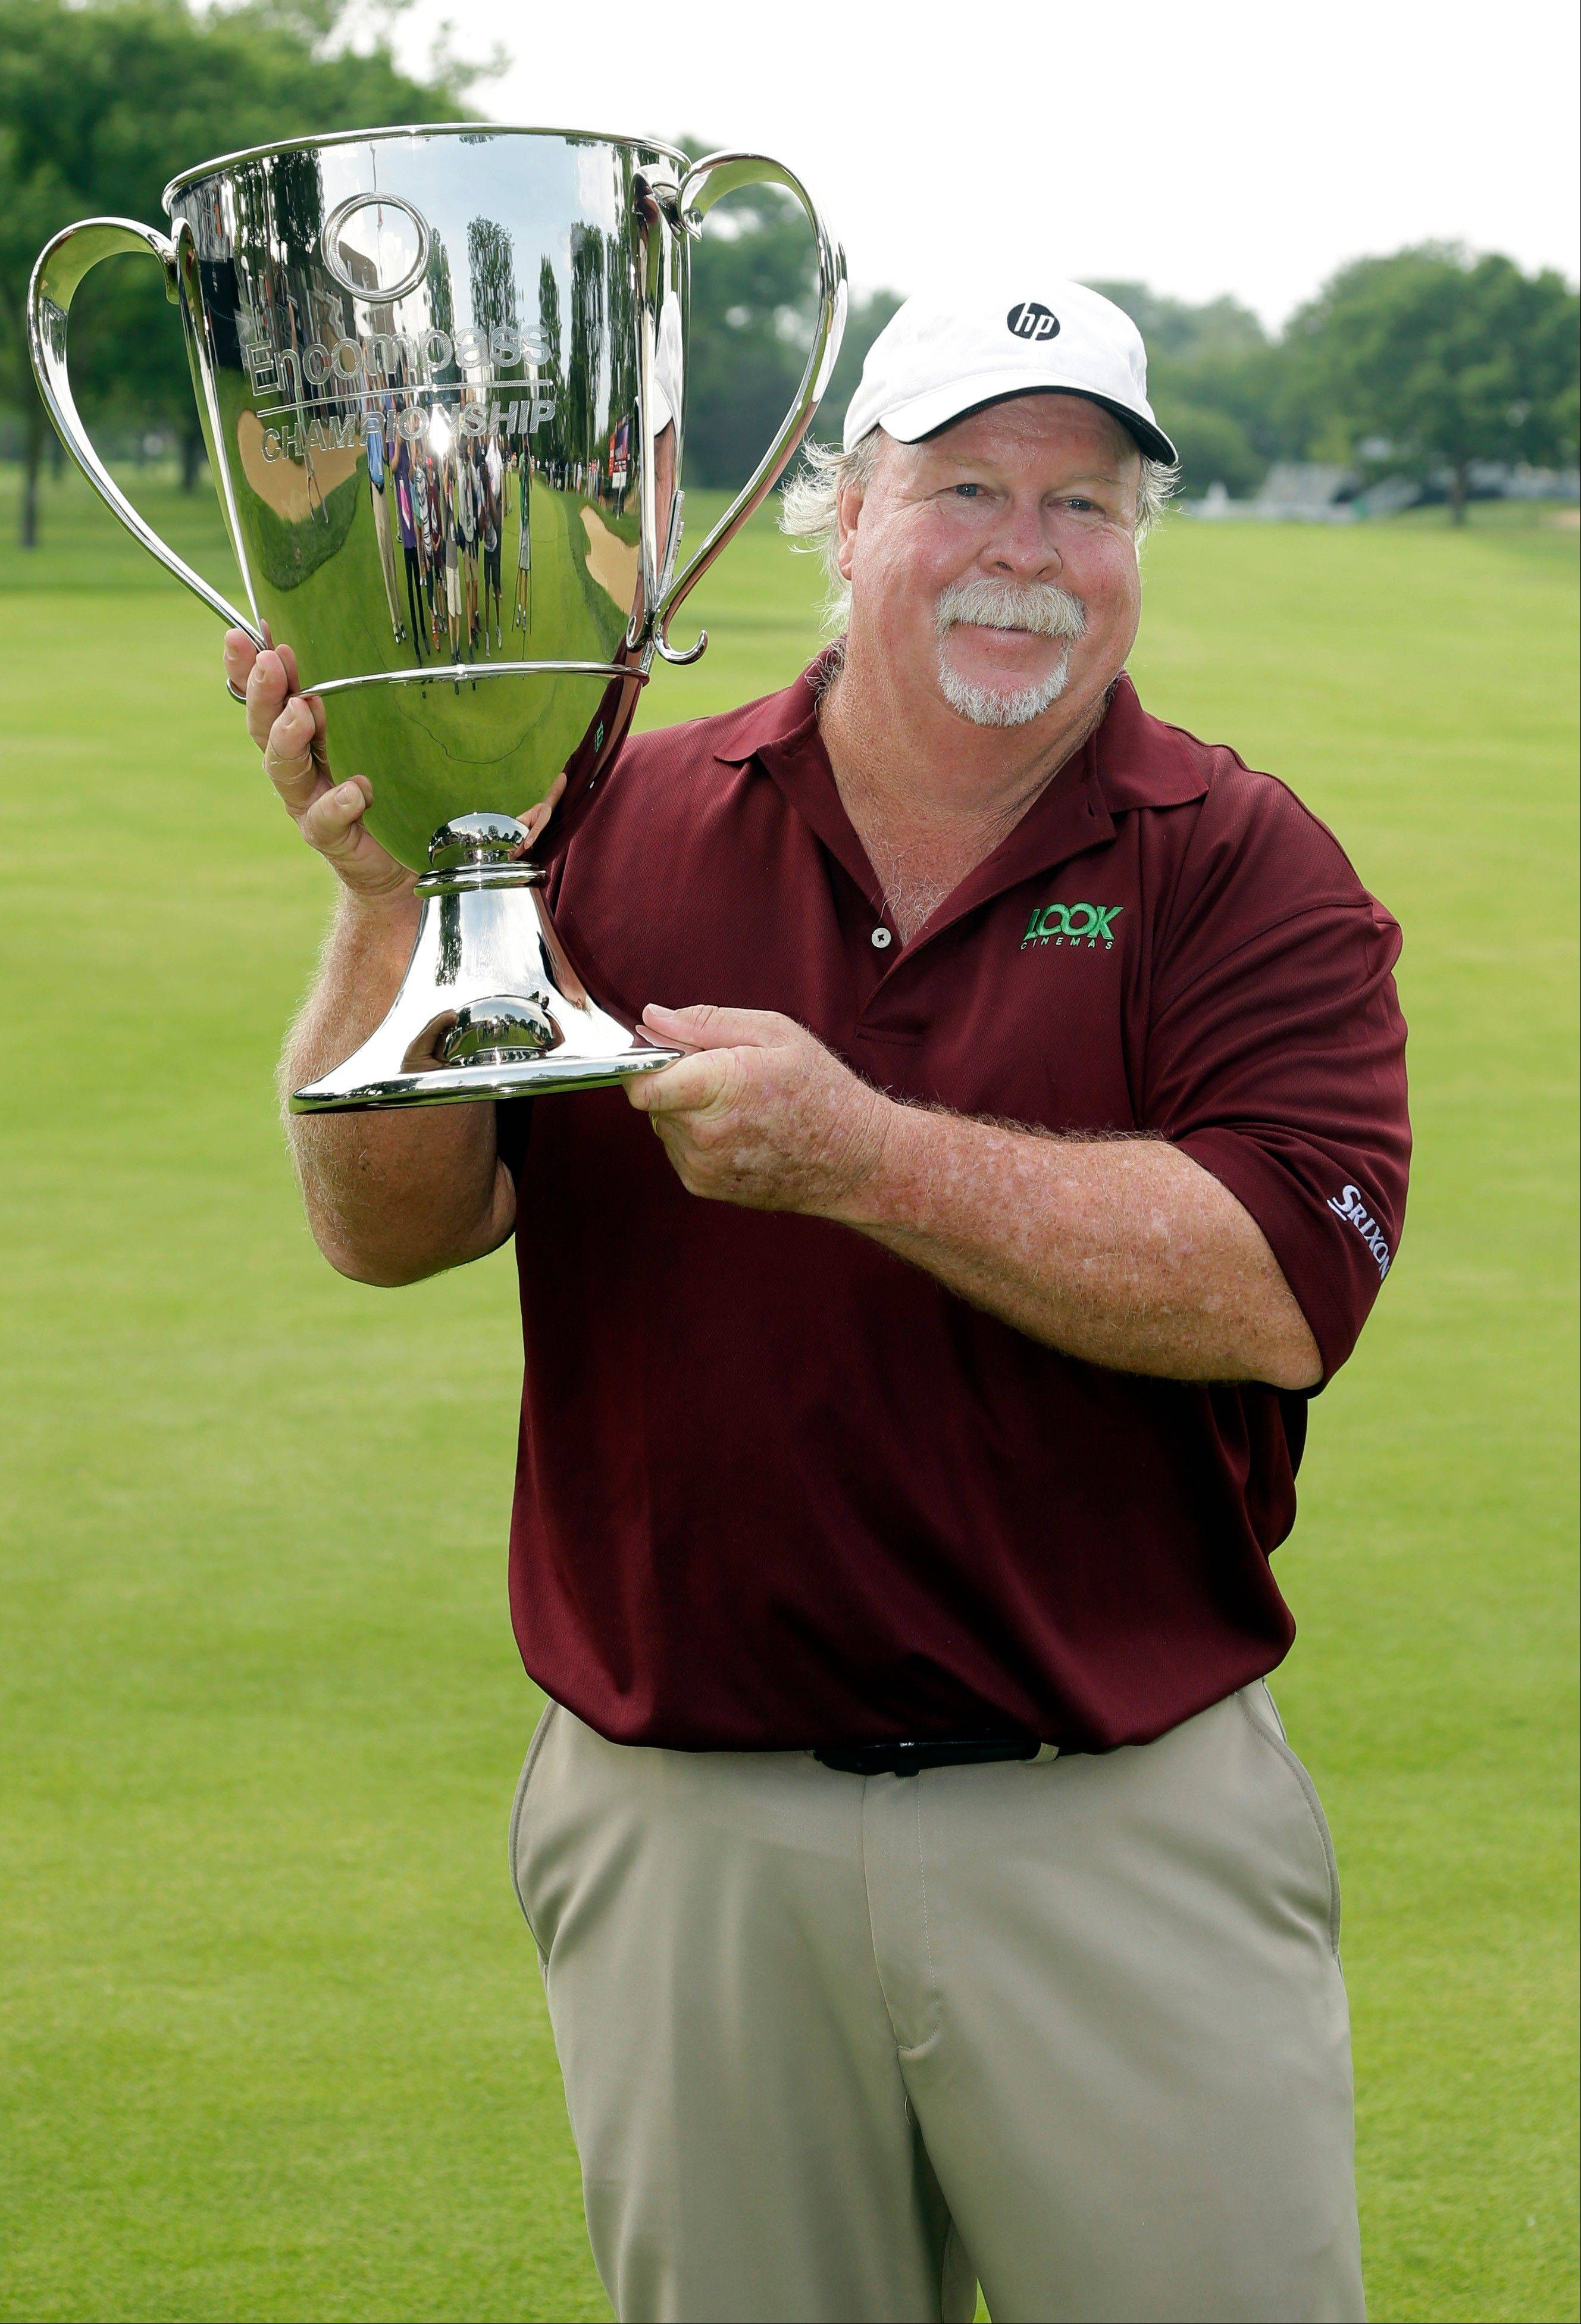 Craig Stadler displays his trophy after winning the Champions Tour's Encompass Championship on Sunday at North Shore Country Club in Glenview.